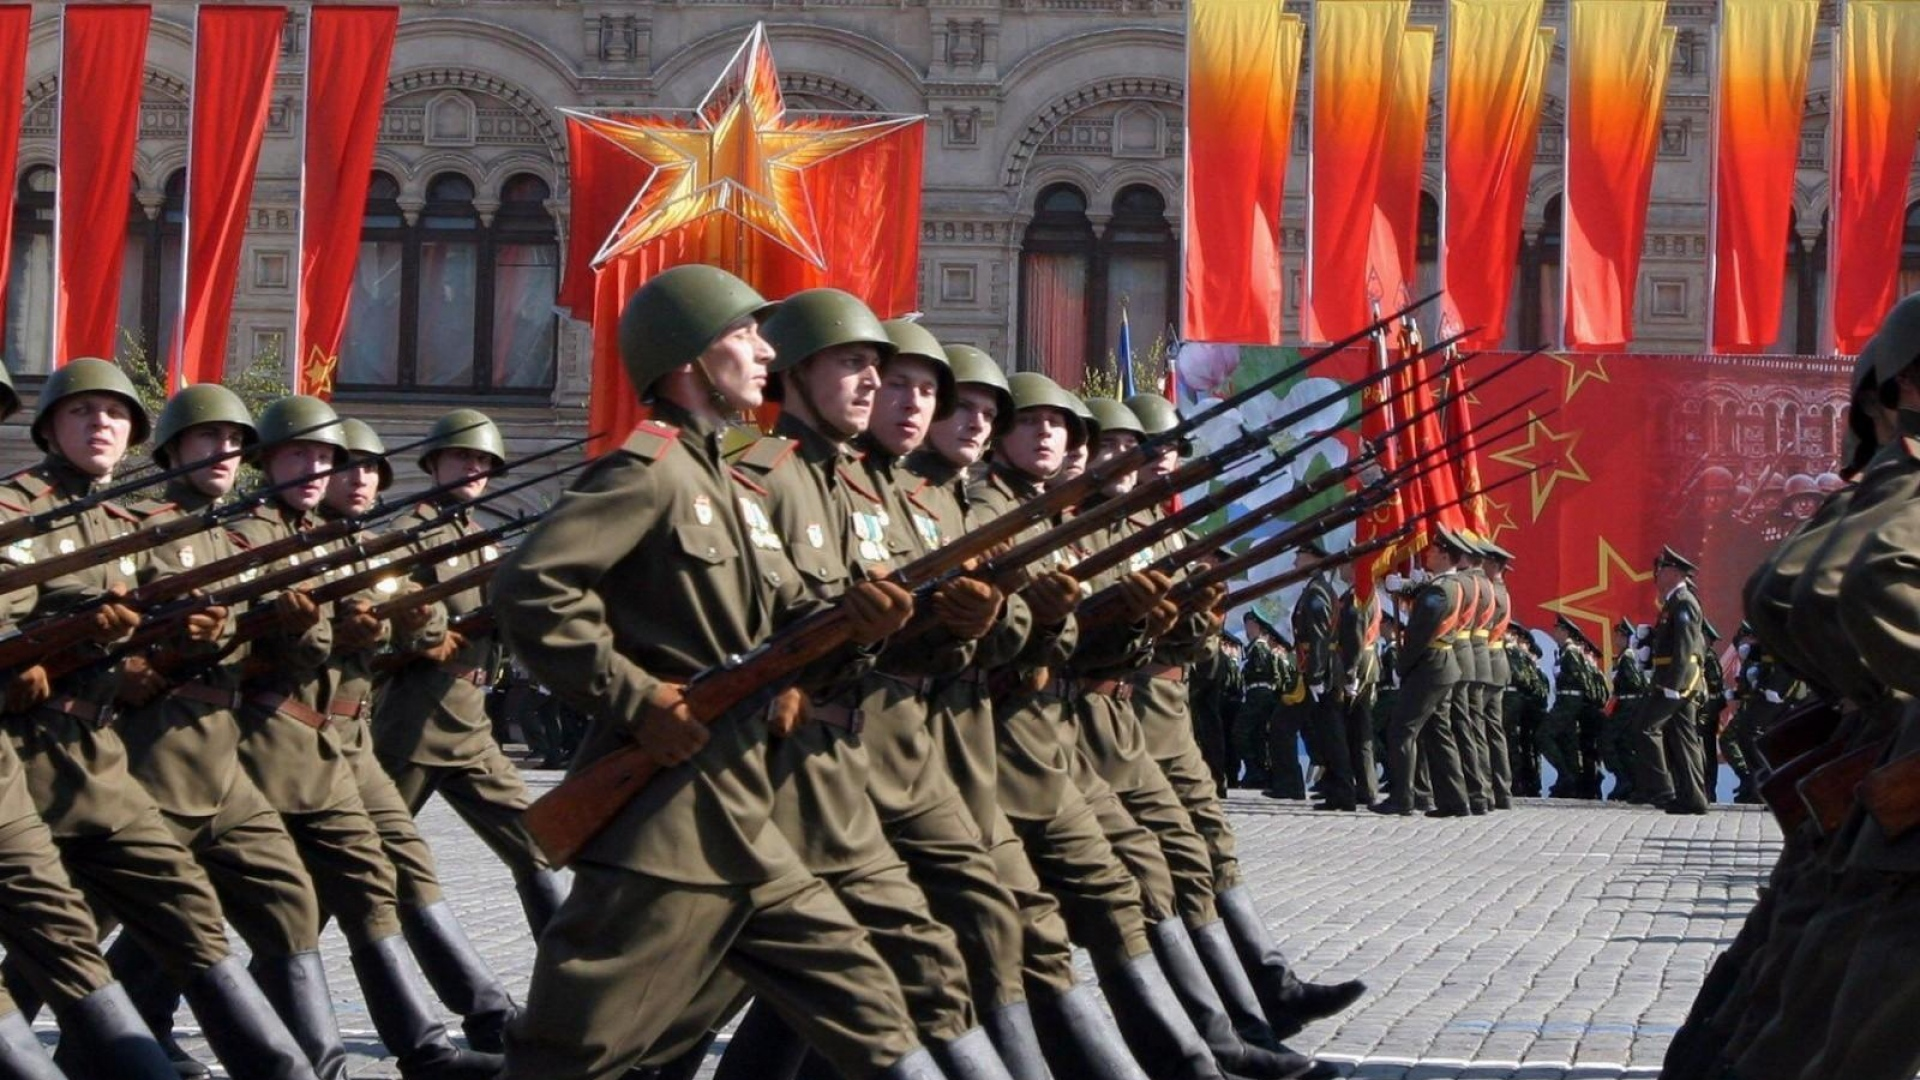 Wallpaper Victory Day Russia Holidays Hd Celebrations: Download Wallpaper 1920x1080 May 9, Victory Day, Holiday